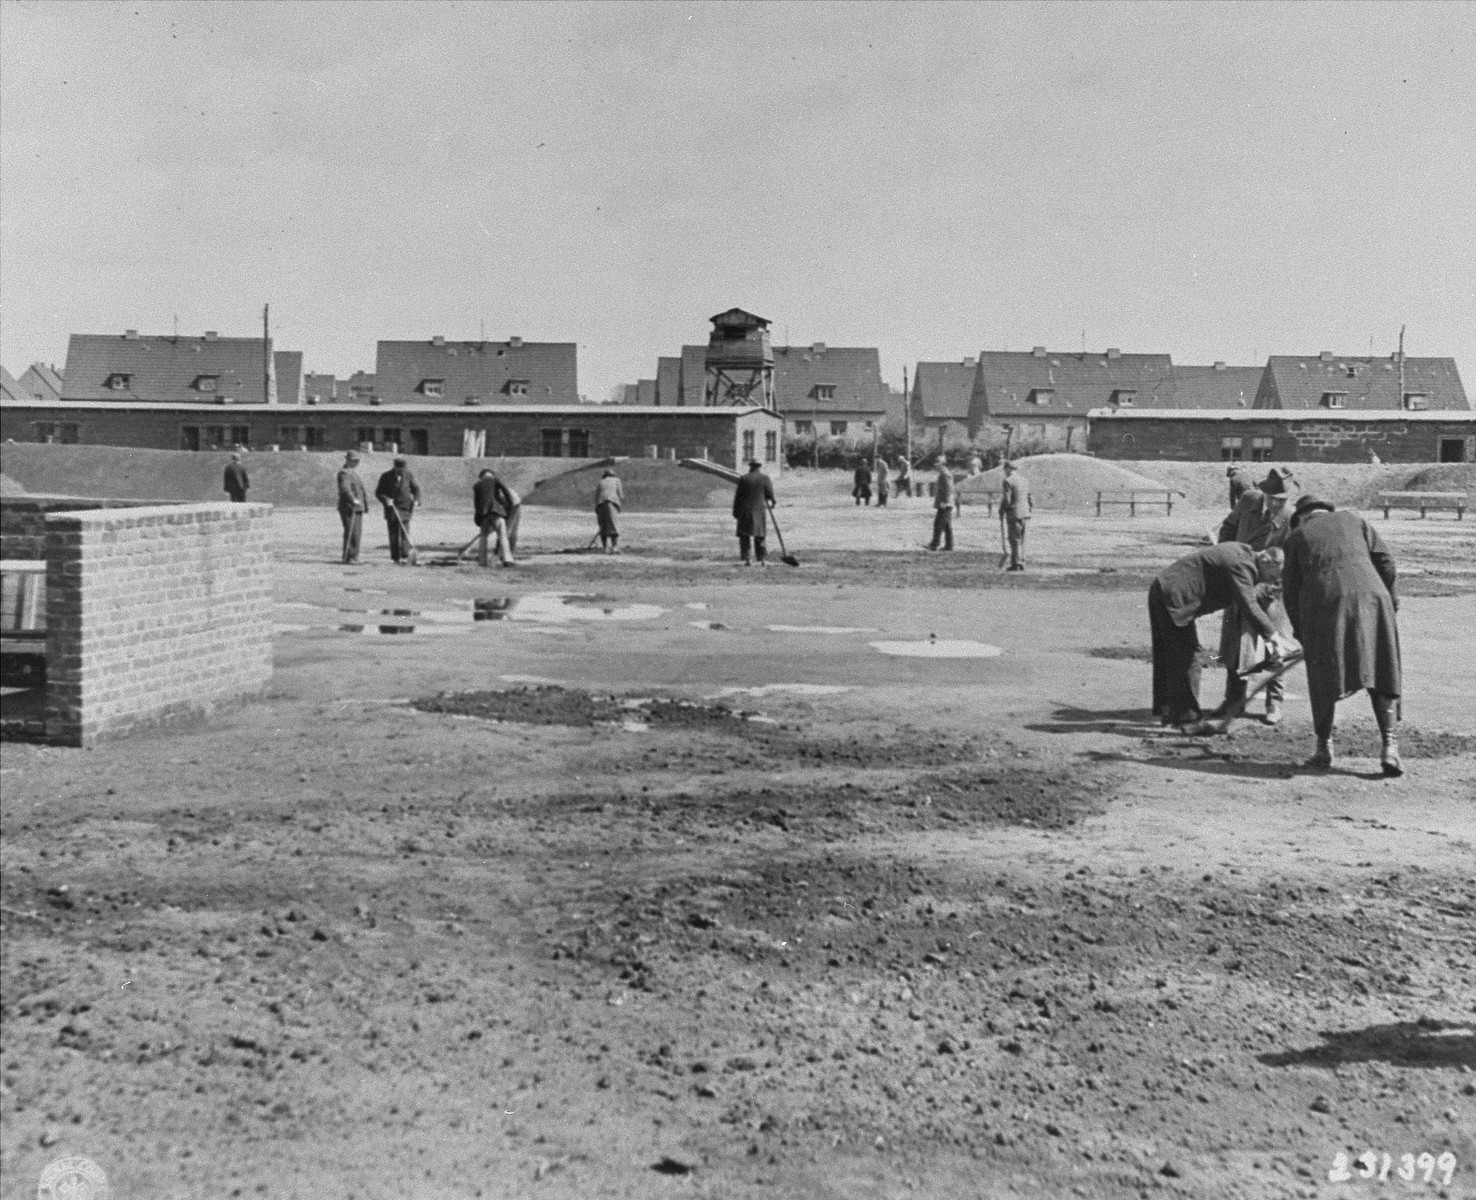 Germans incarcerated in the Recklinghausen internment camp fill puddles in the camp yard.